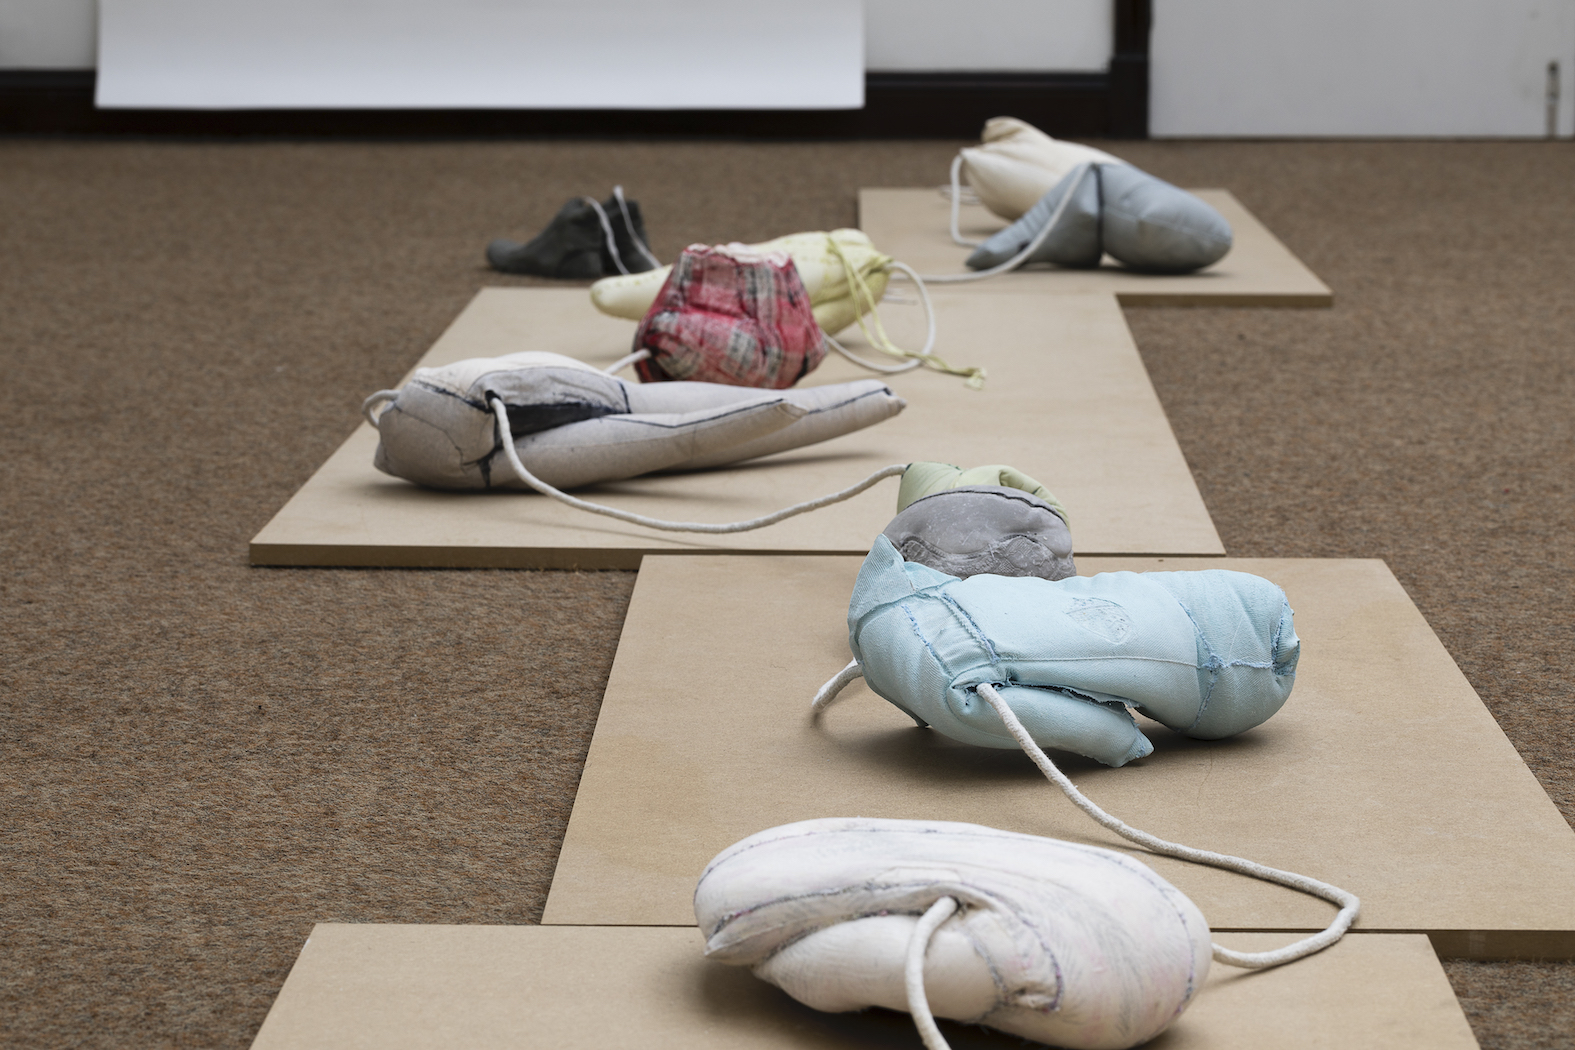 13 Untitled (eleven), jesmonite, rope, concrete, on mdf, 675 x 60 x 18 cm, Worthing Museum, photo Andrew Youngson